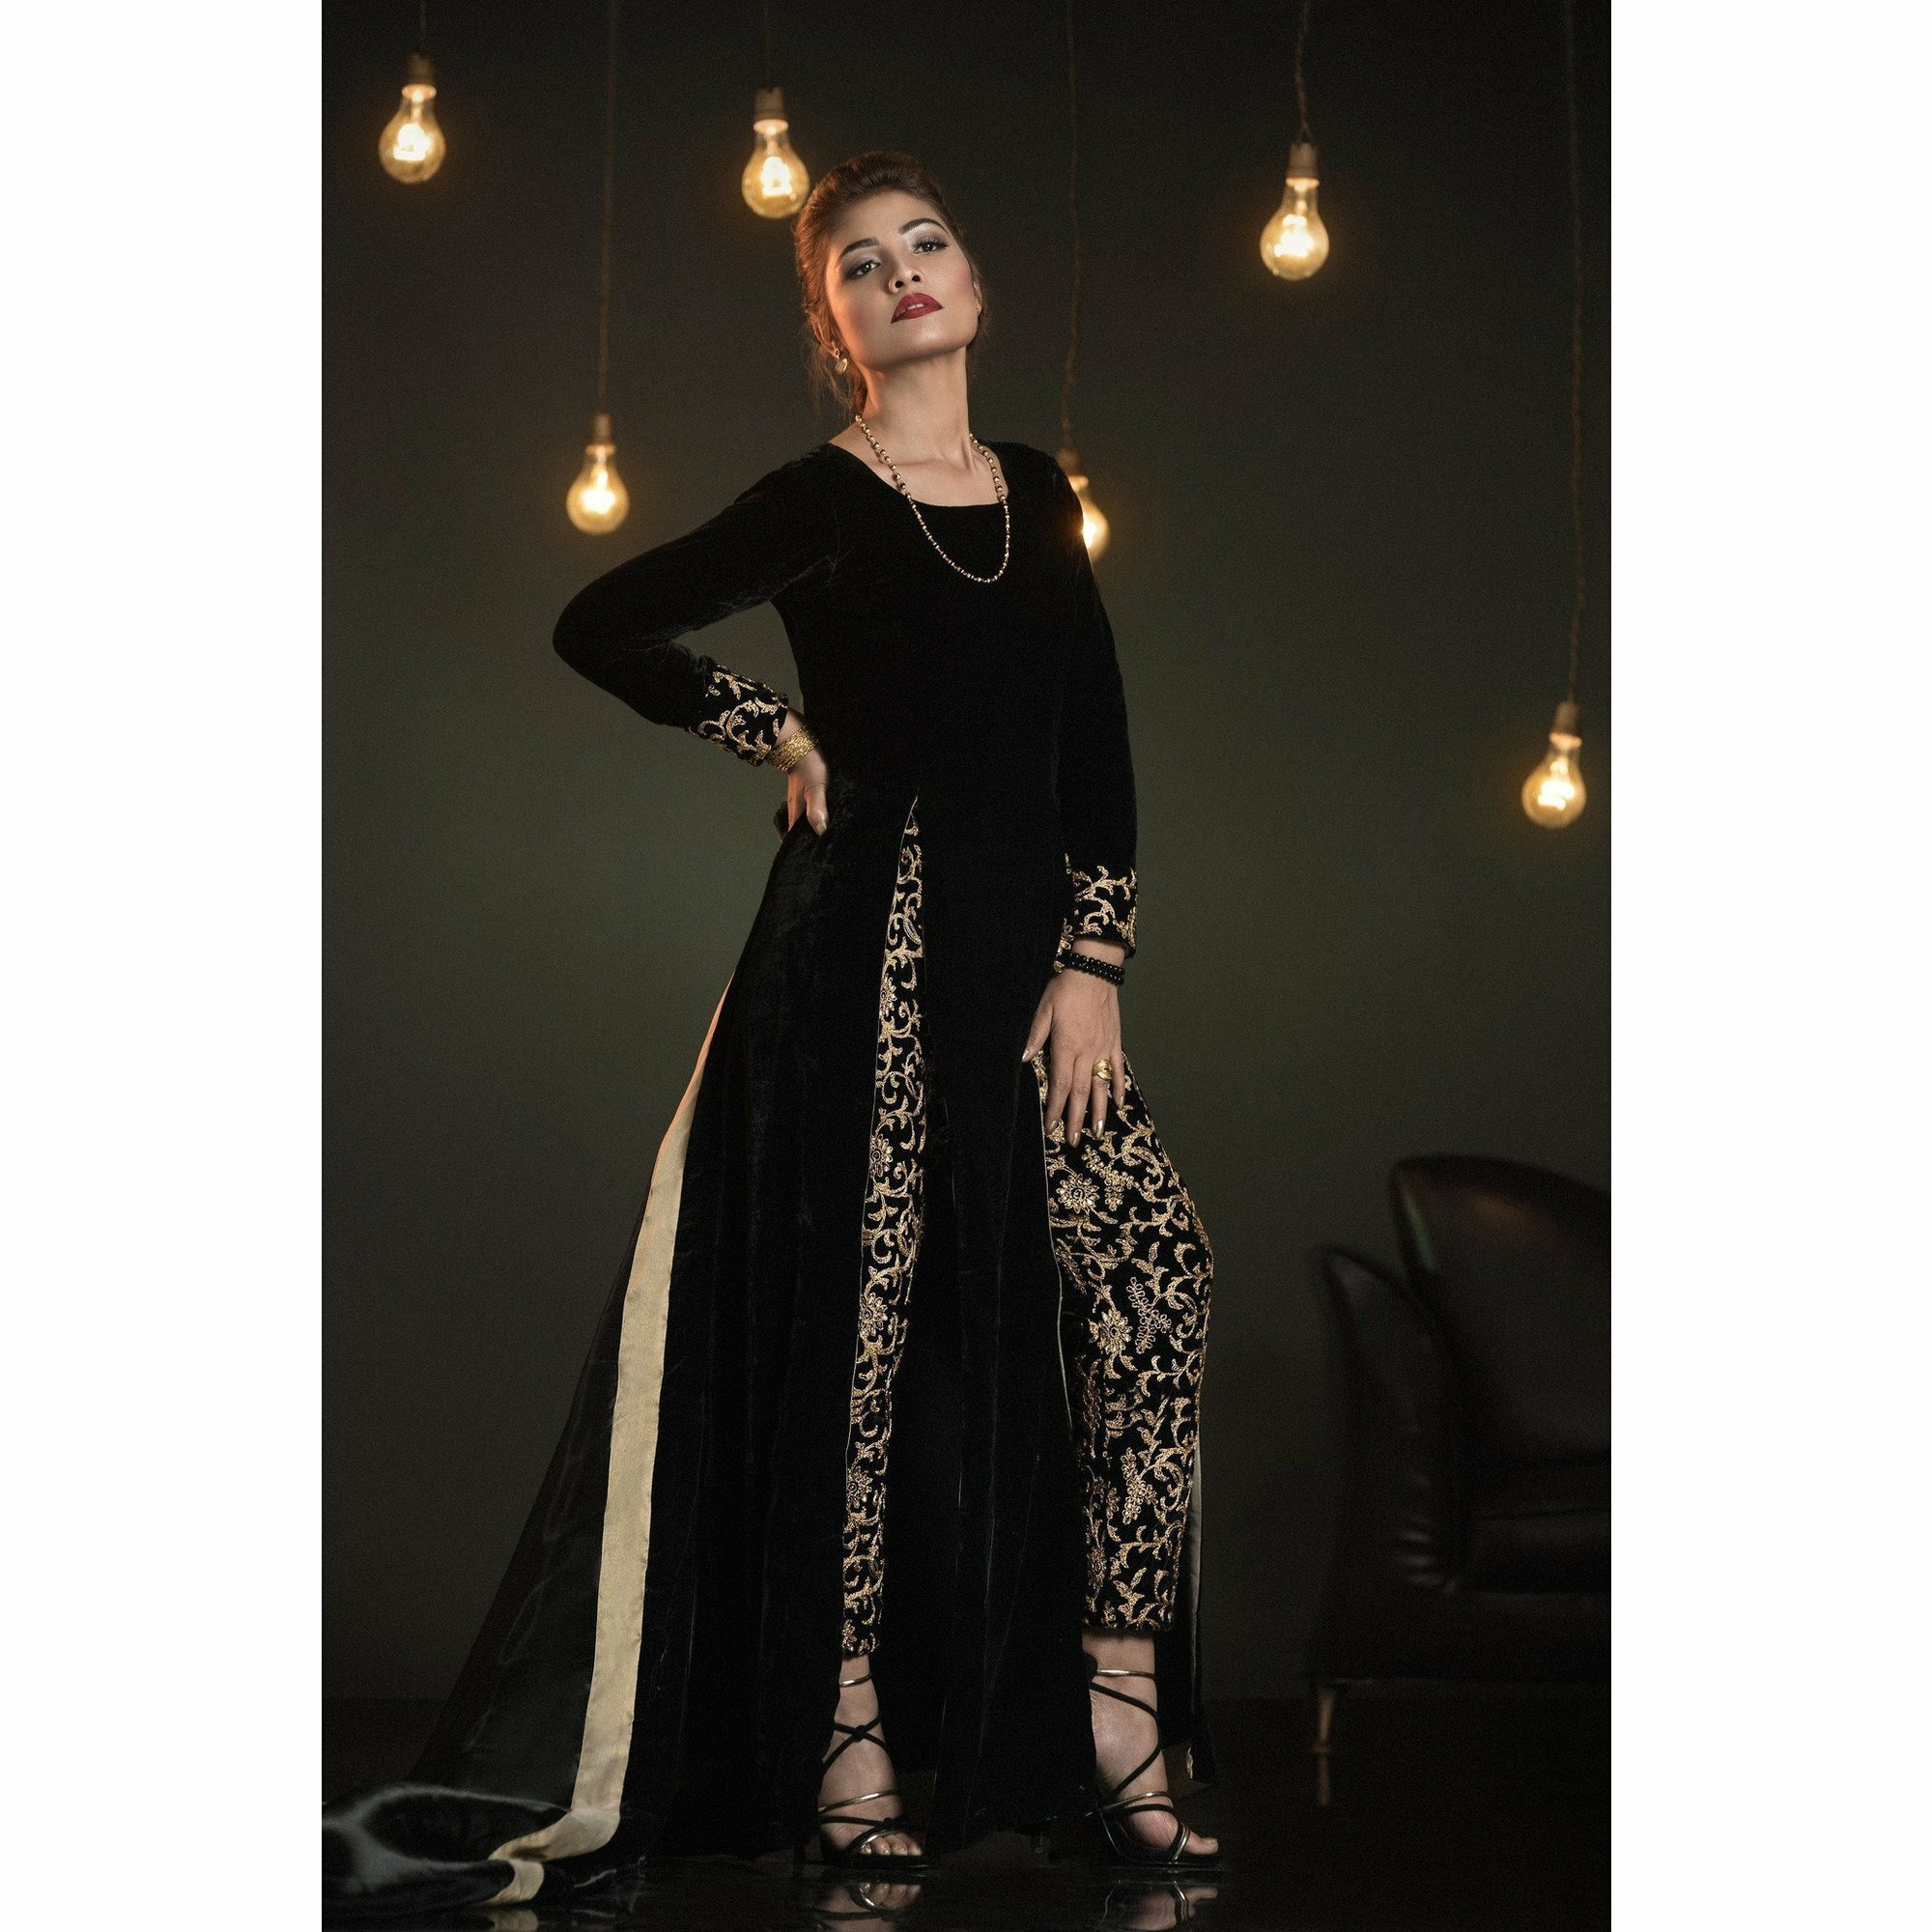 A-MEENAH Embroidered Fully Stitched Women's Suit | A-Blacks 04 (ANEESA SHARIF) - House of Faiza